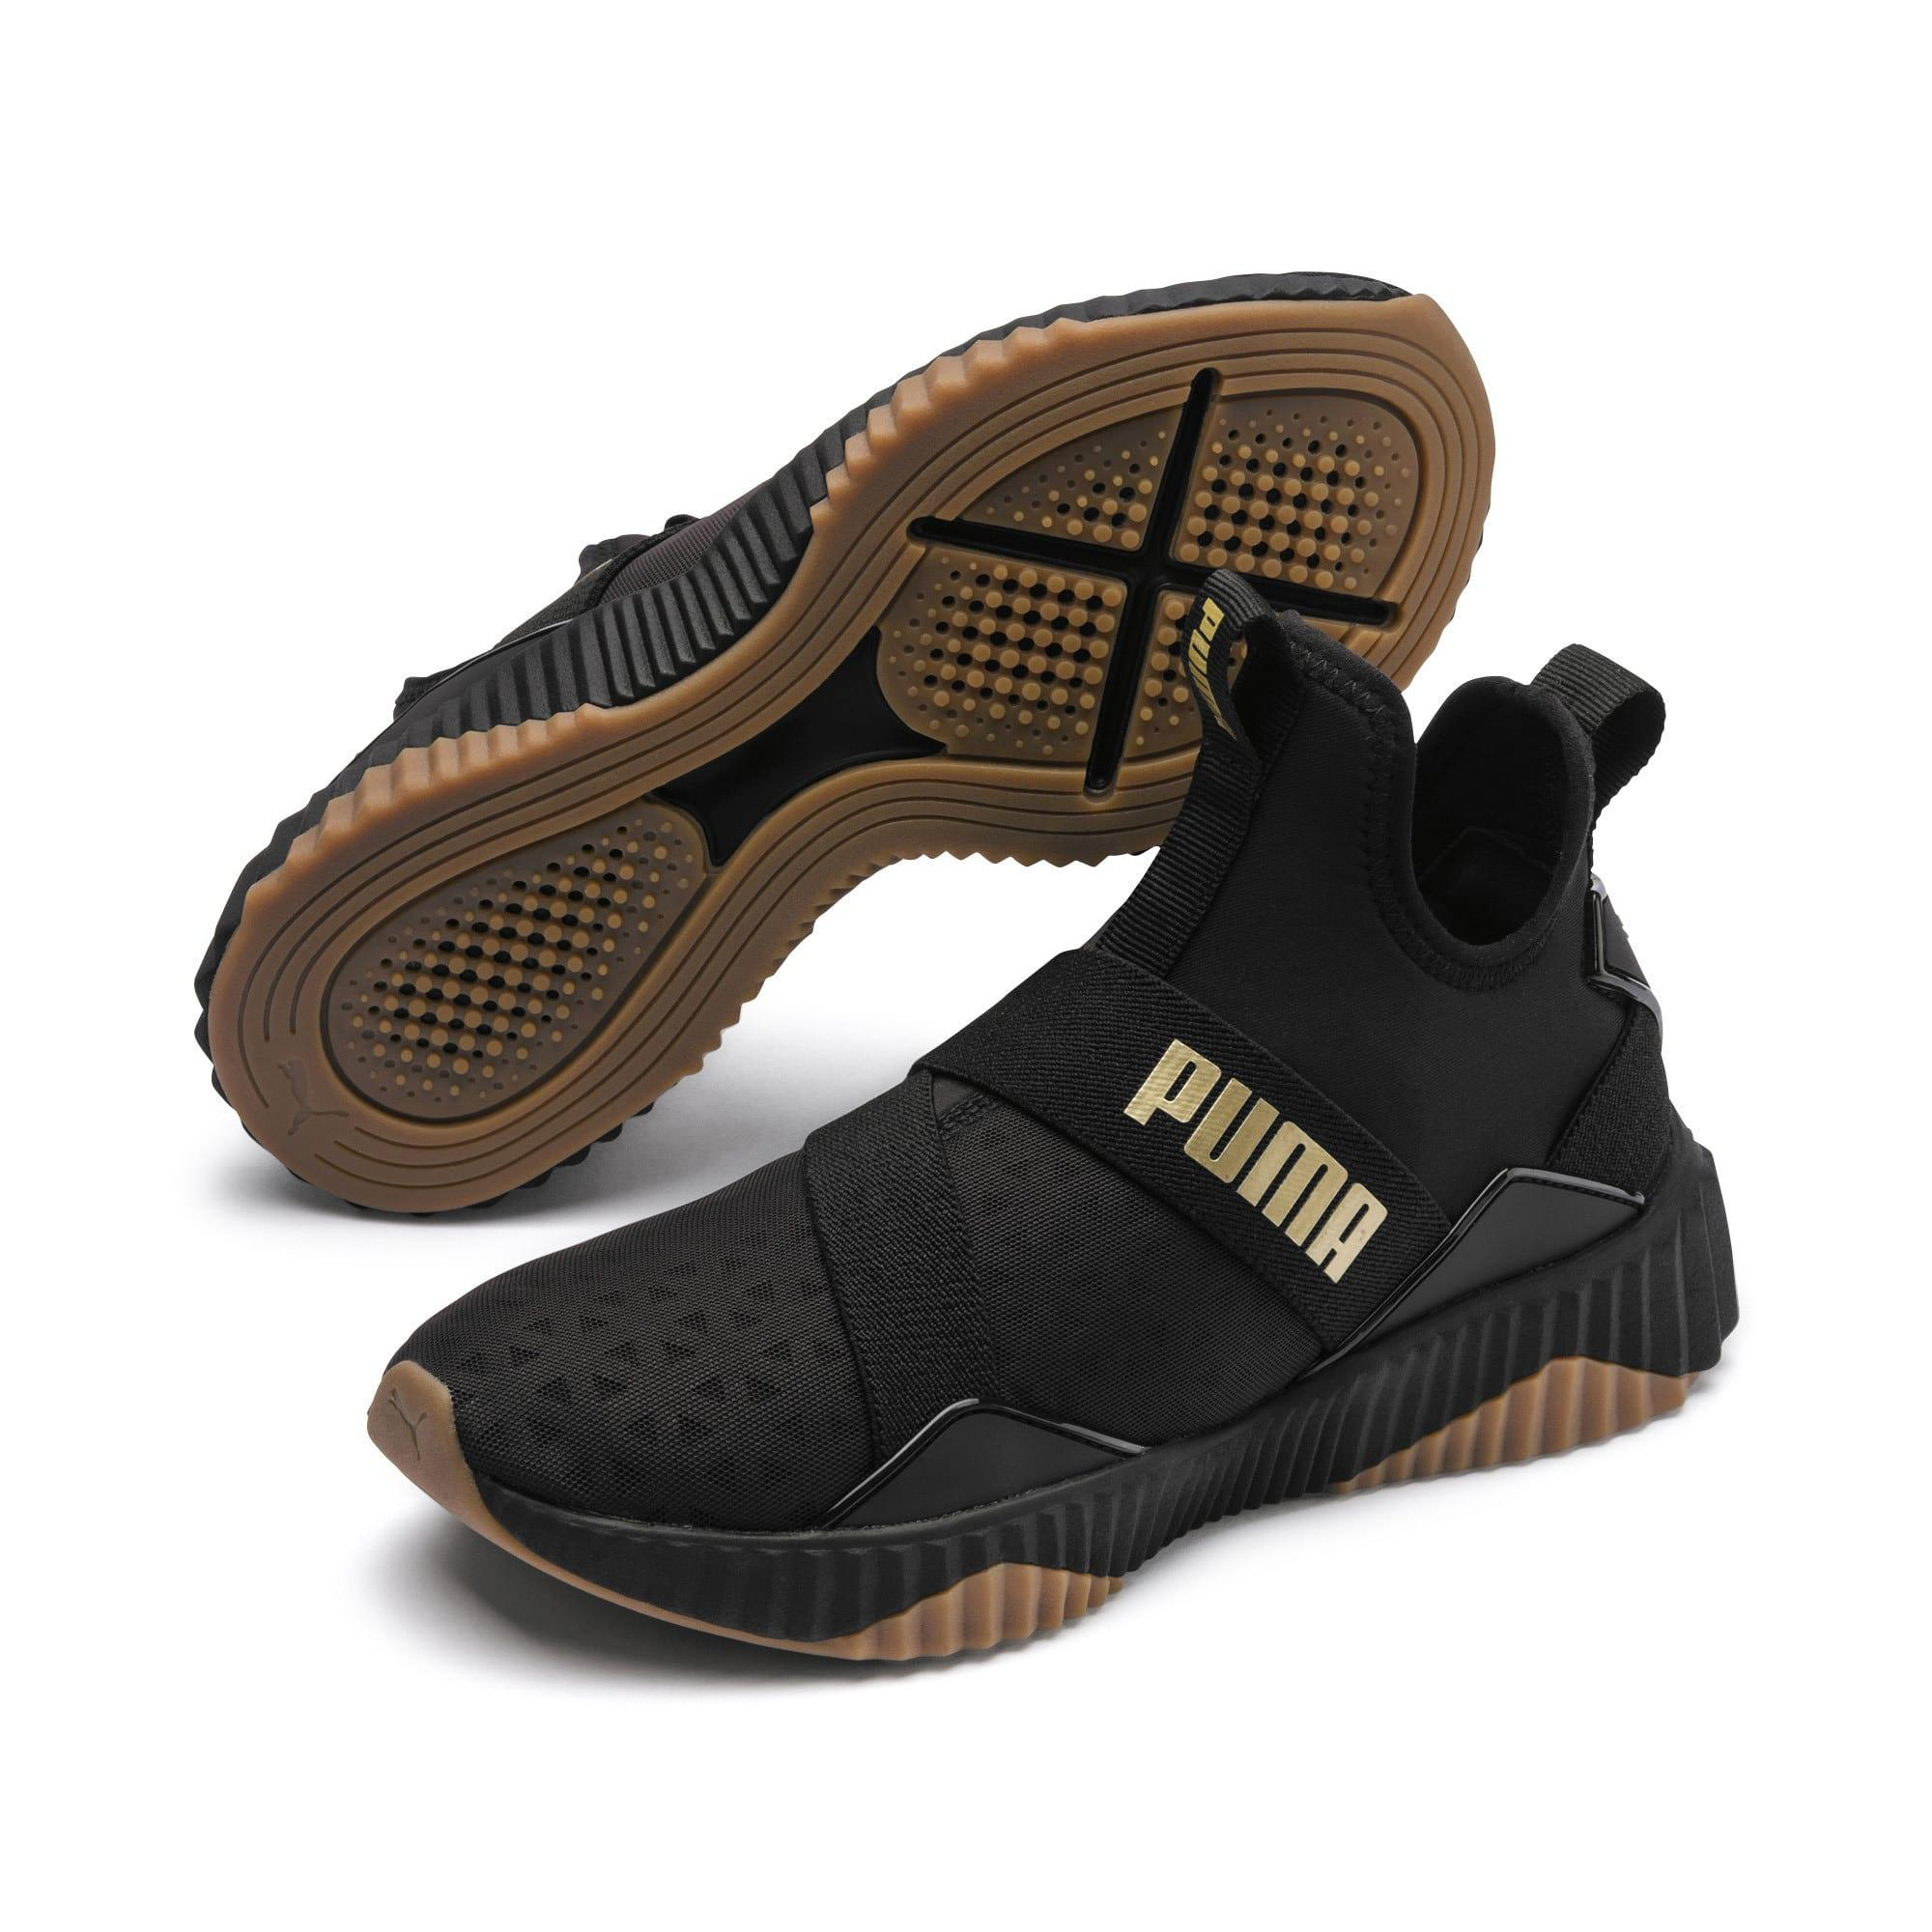 PUMA Rubber Defy Mid Core Shoes in